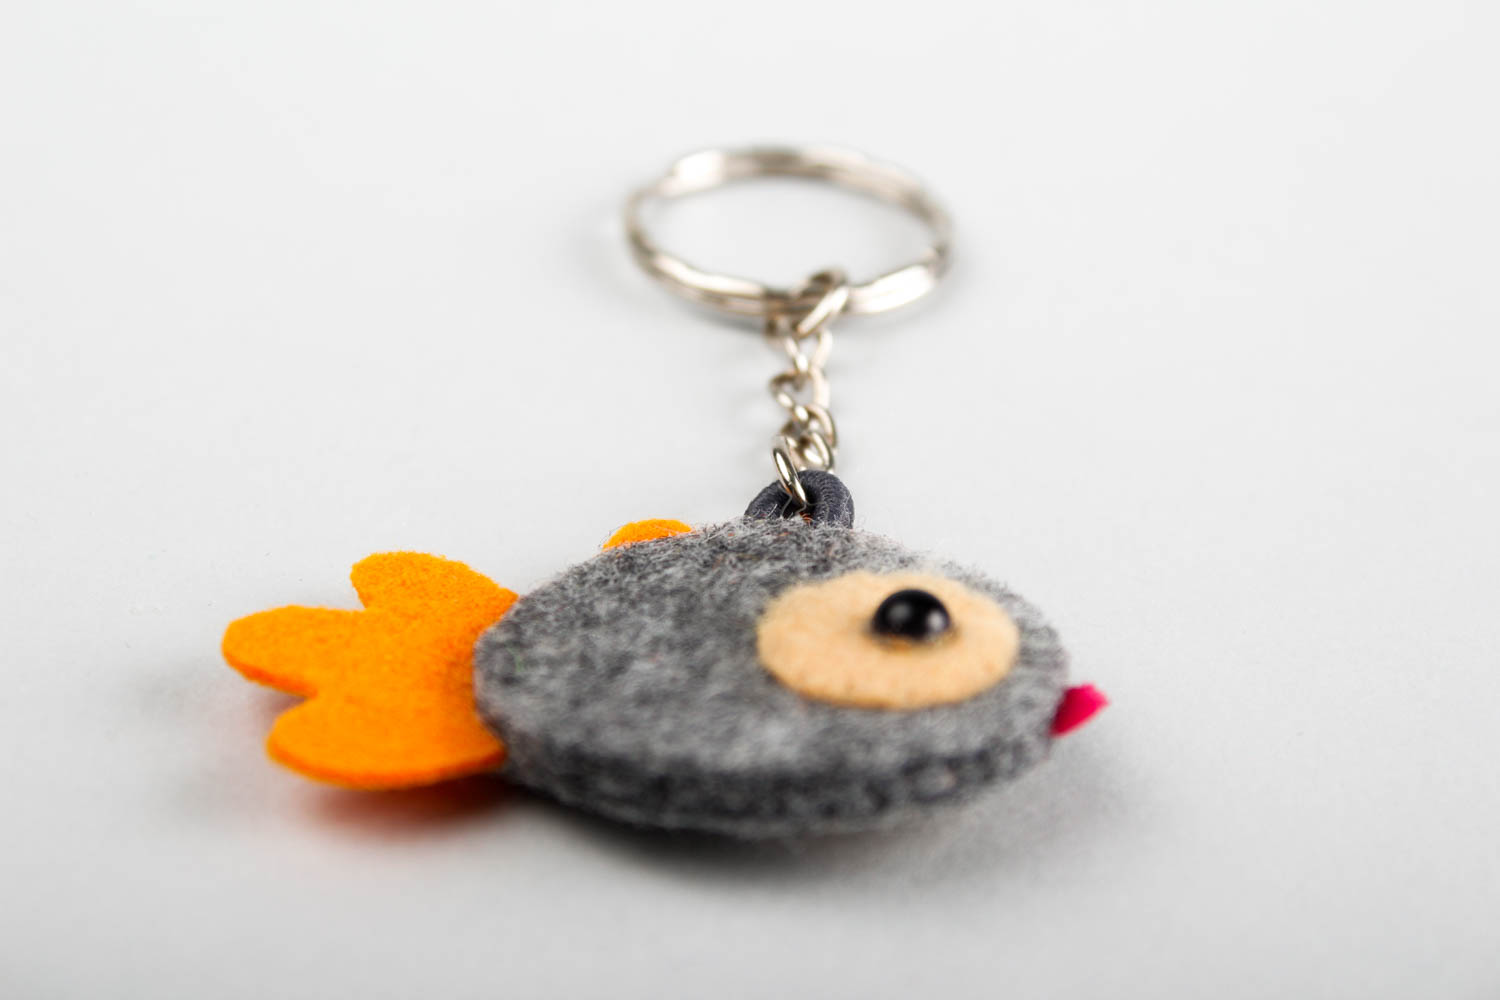 Funny toys handmade woolen keychain felted toy key ideas present for kids photo 3